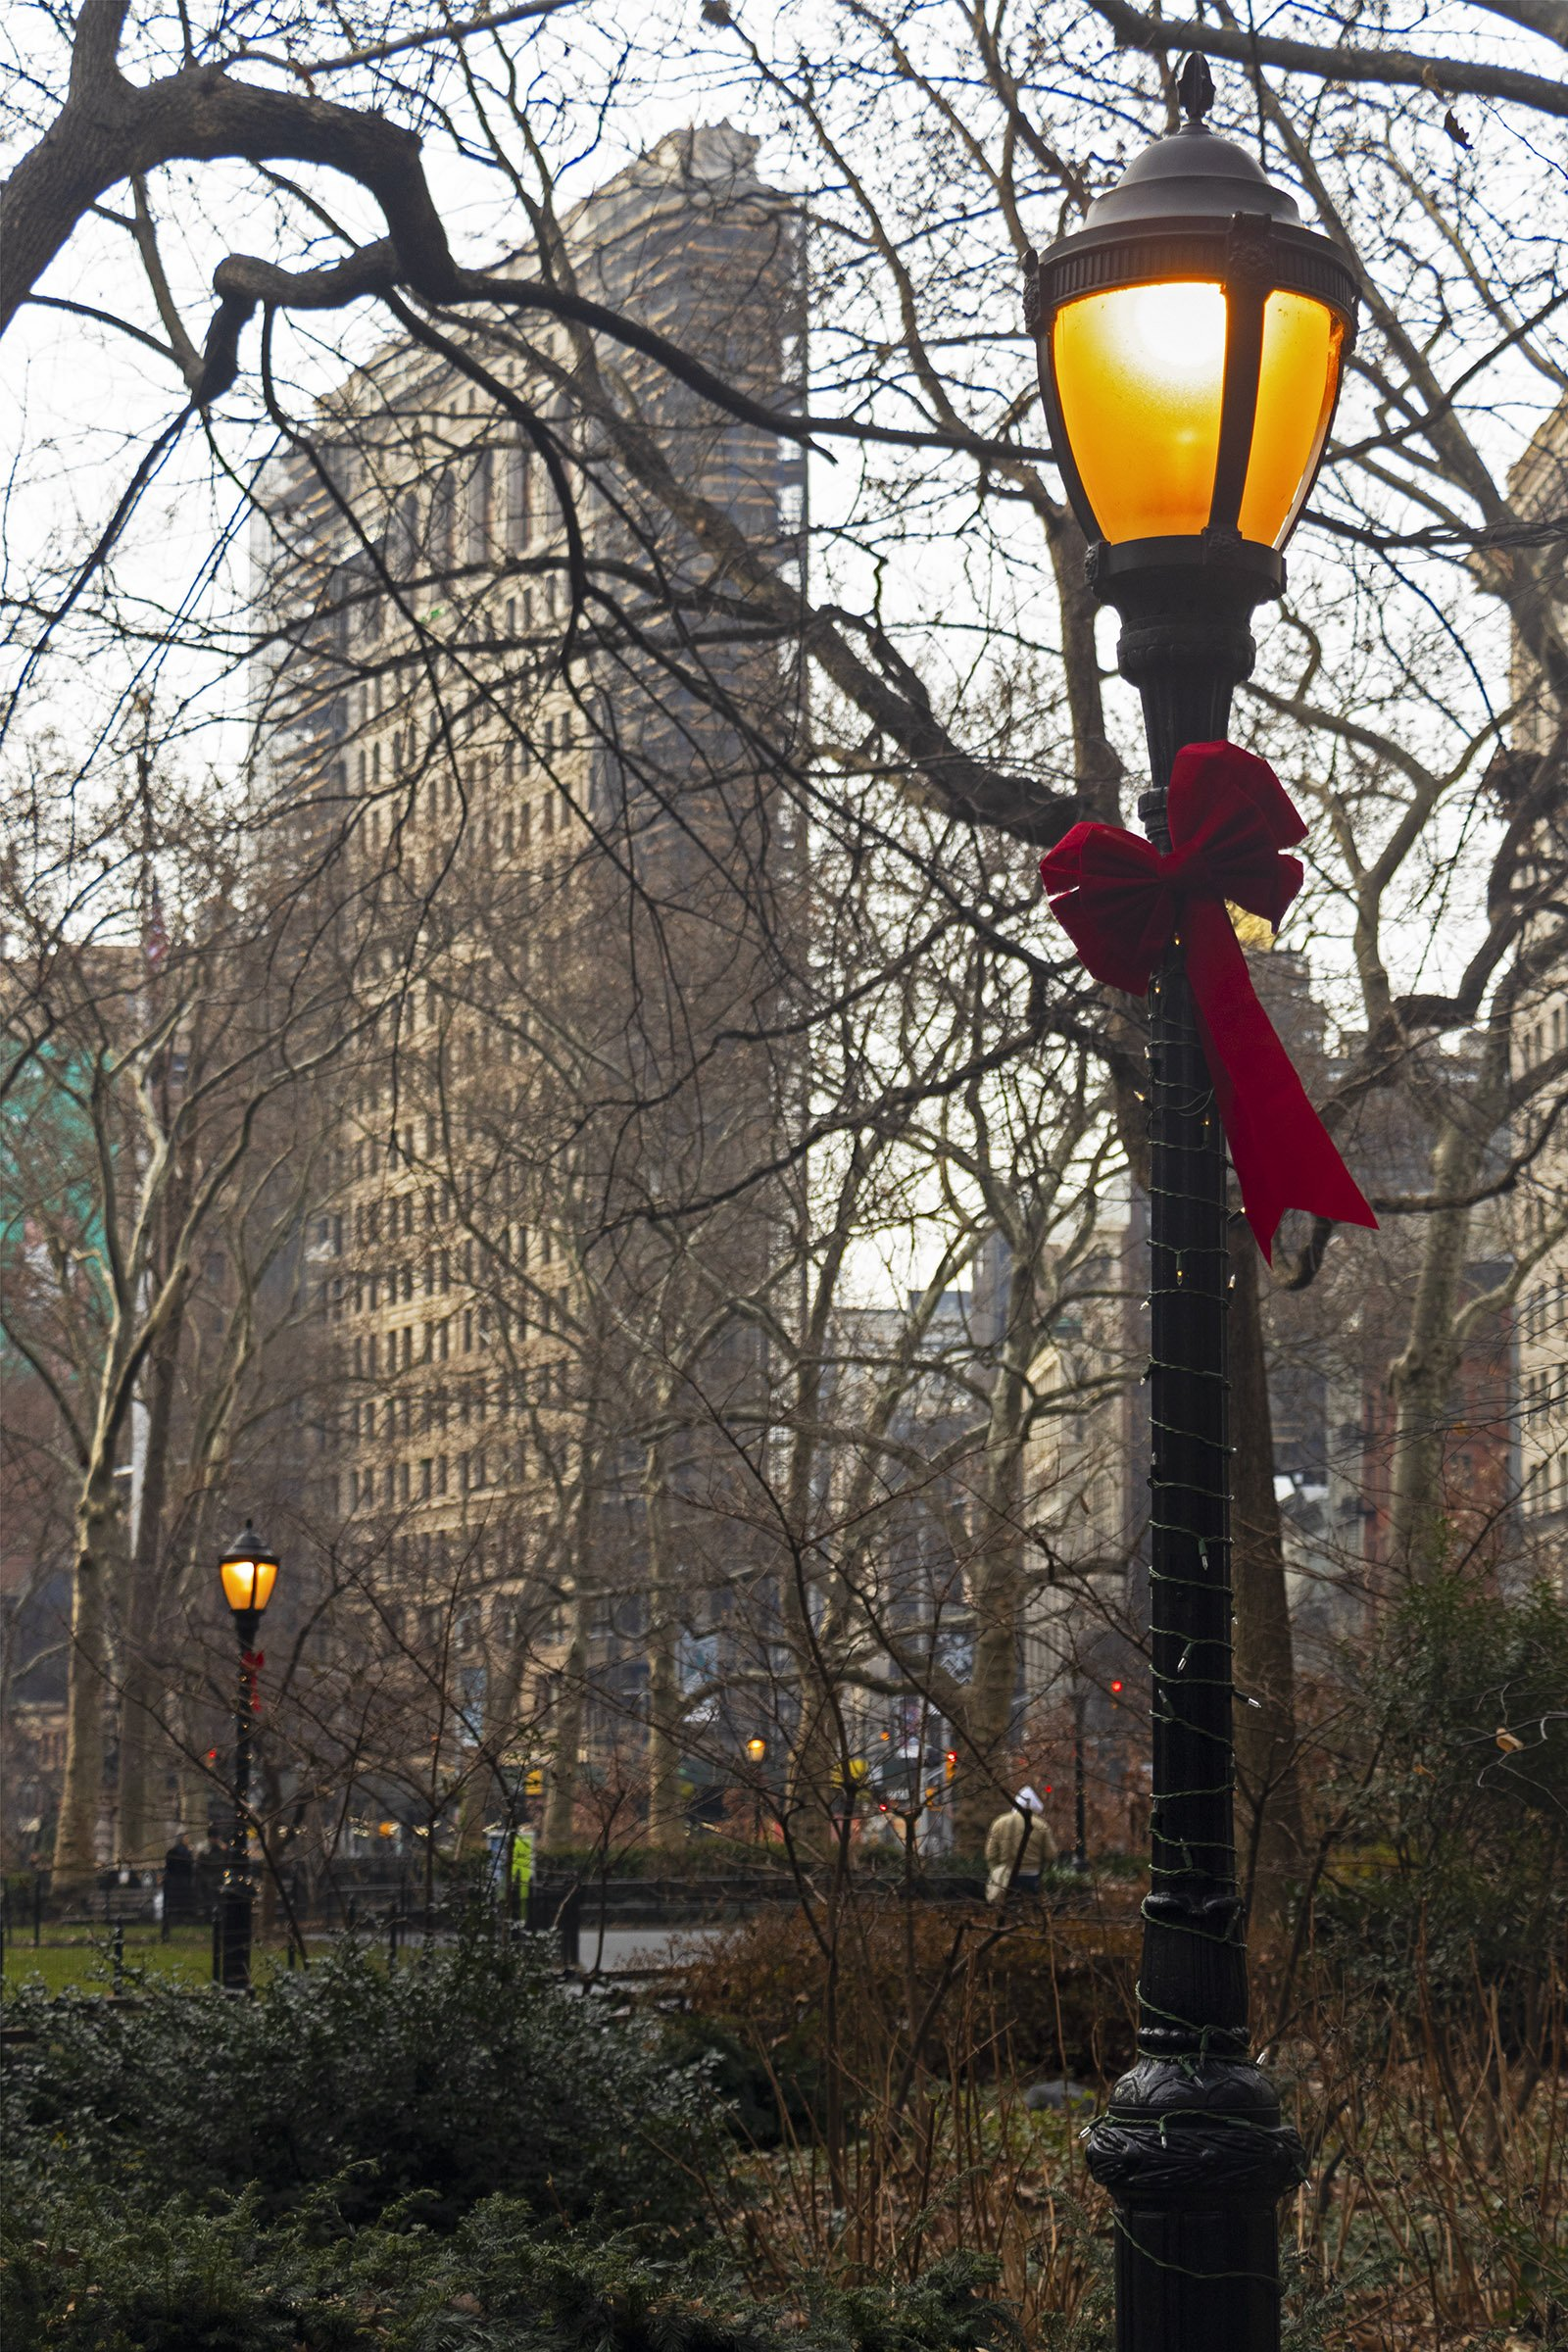 Madison Square Park and Flat Iron Building